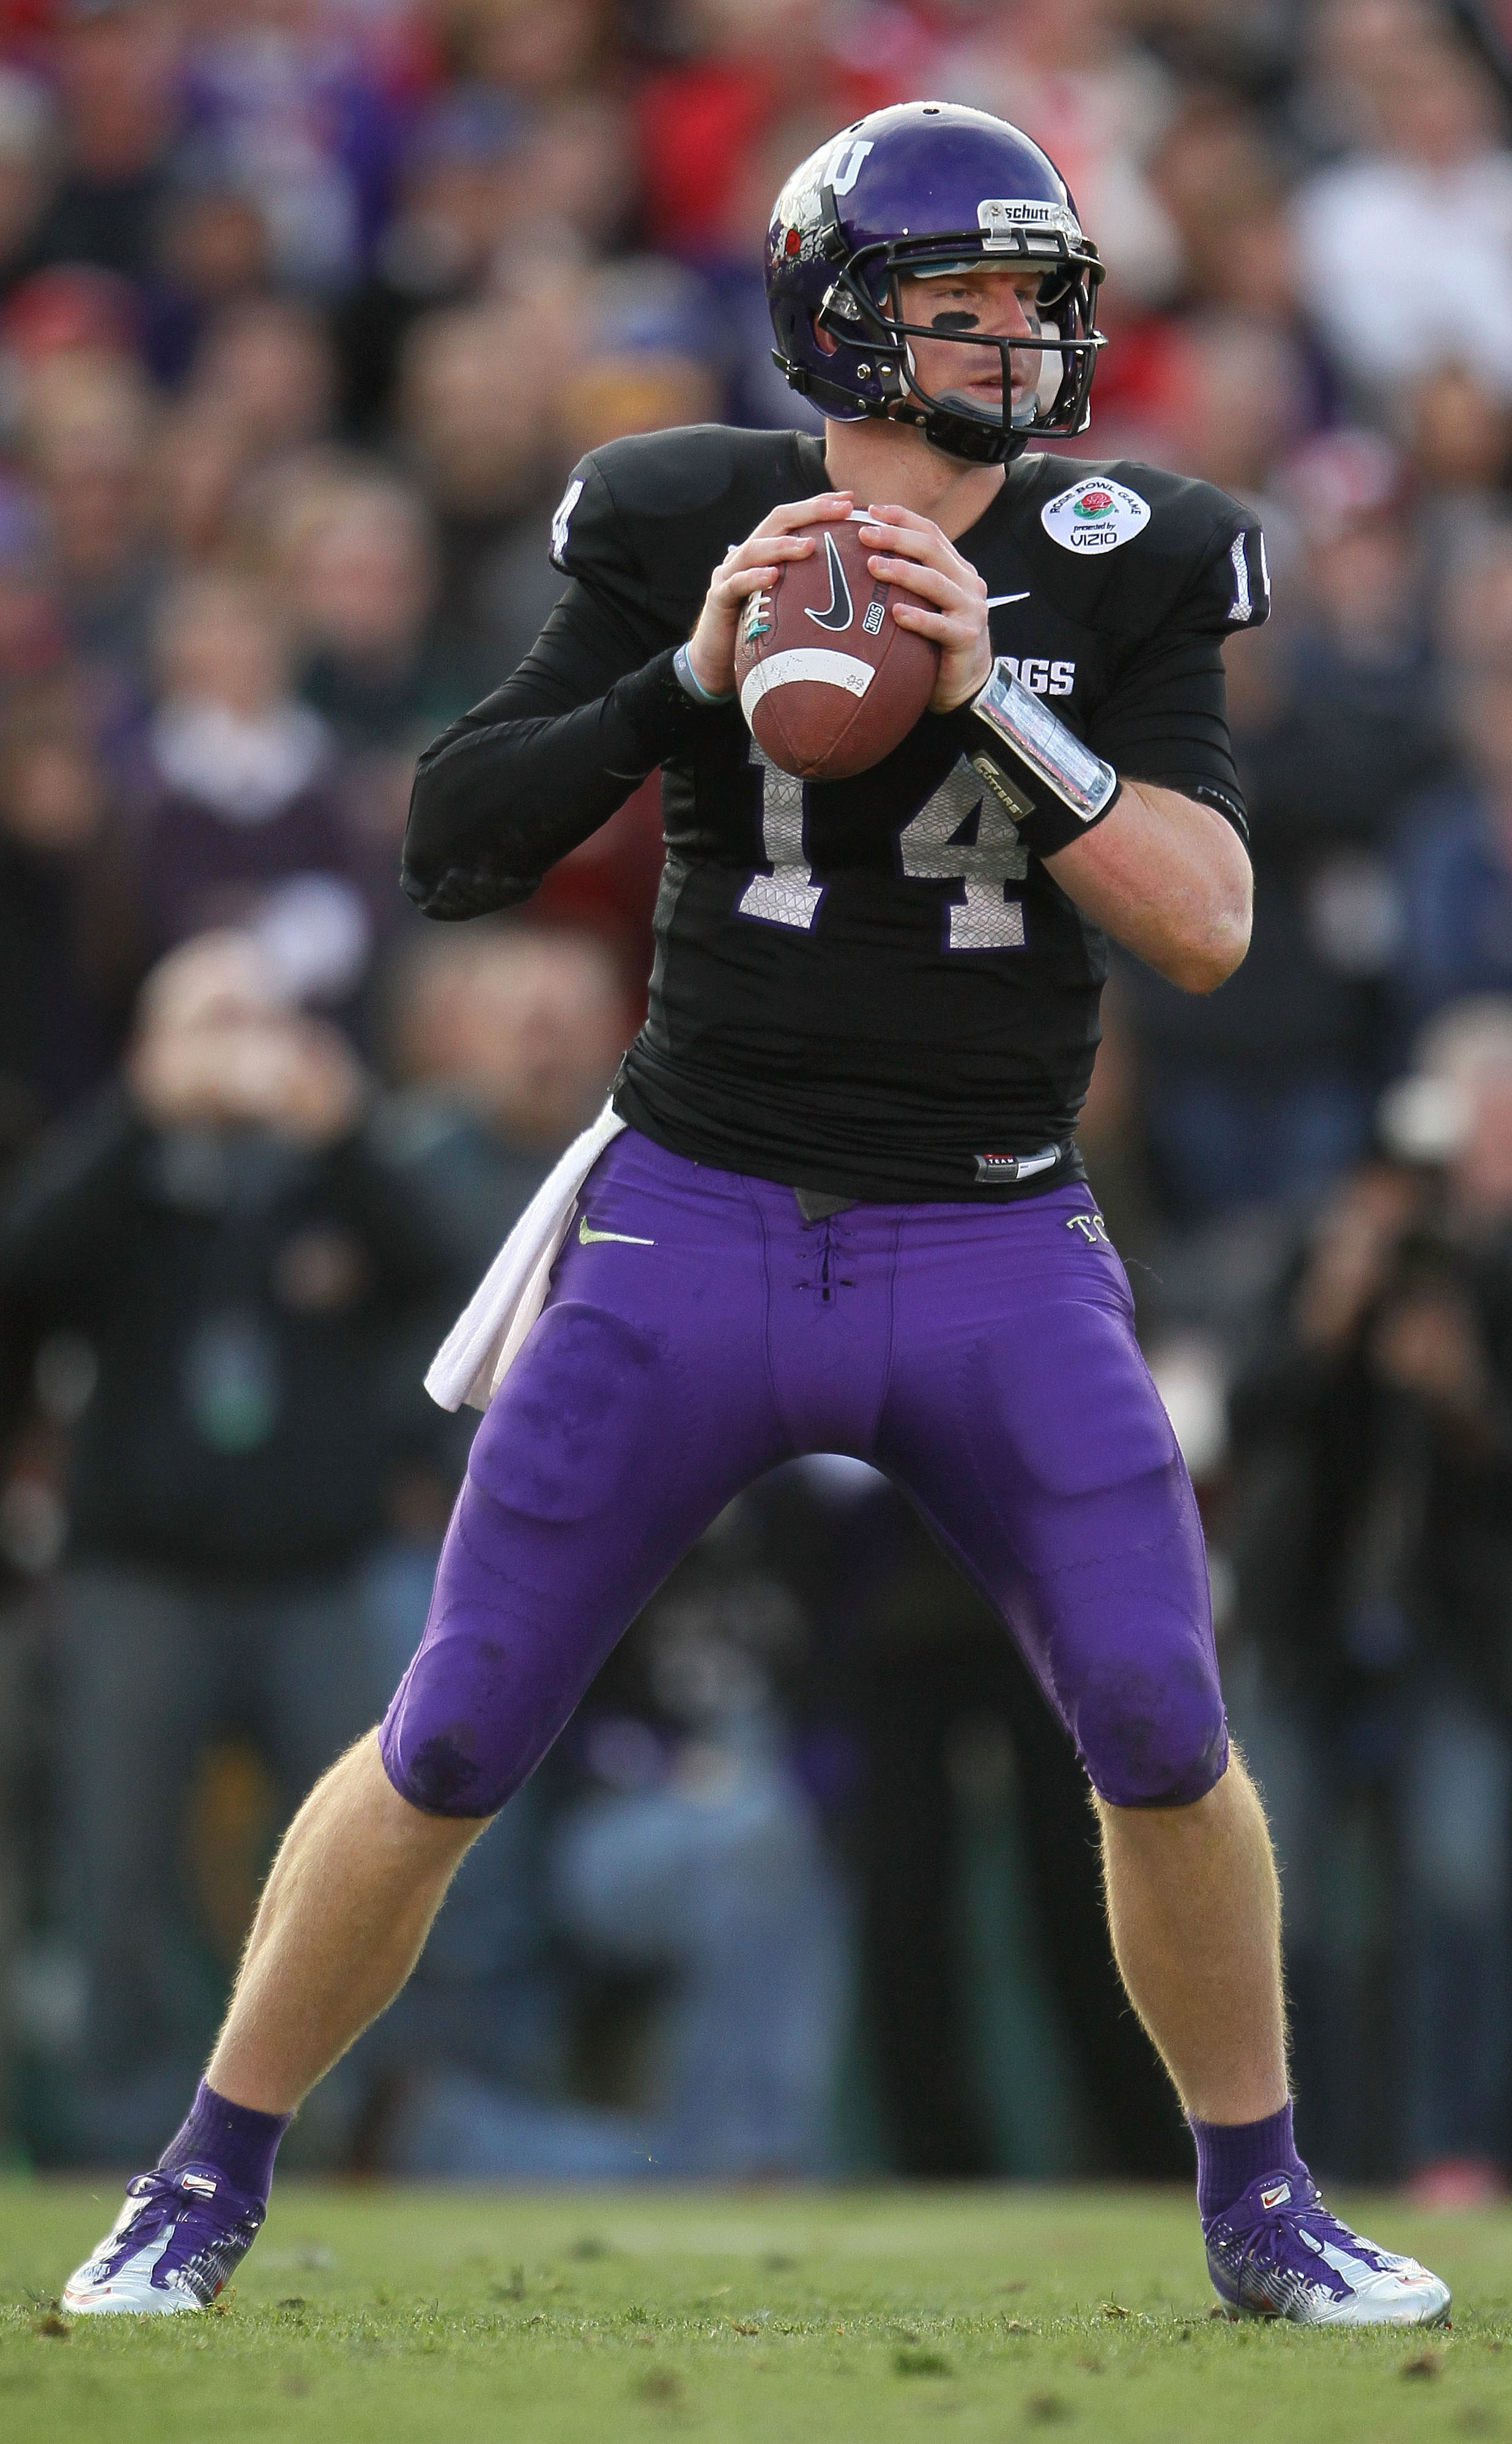 PASADENA, CA - JANUARY 01:  Quarterback Andy Dalton #14 of the TCU Horned Frogs looks to pass against the Wisconsin Badgers in the 97th Rose Bowl game on January 1, 2011 in Pasadena, California.  (Photo by Jeff Gross/Getty Images)